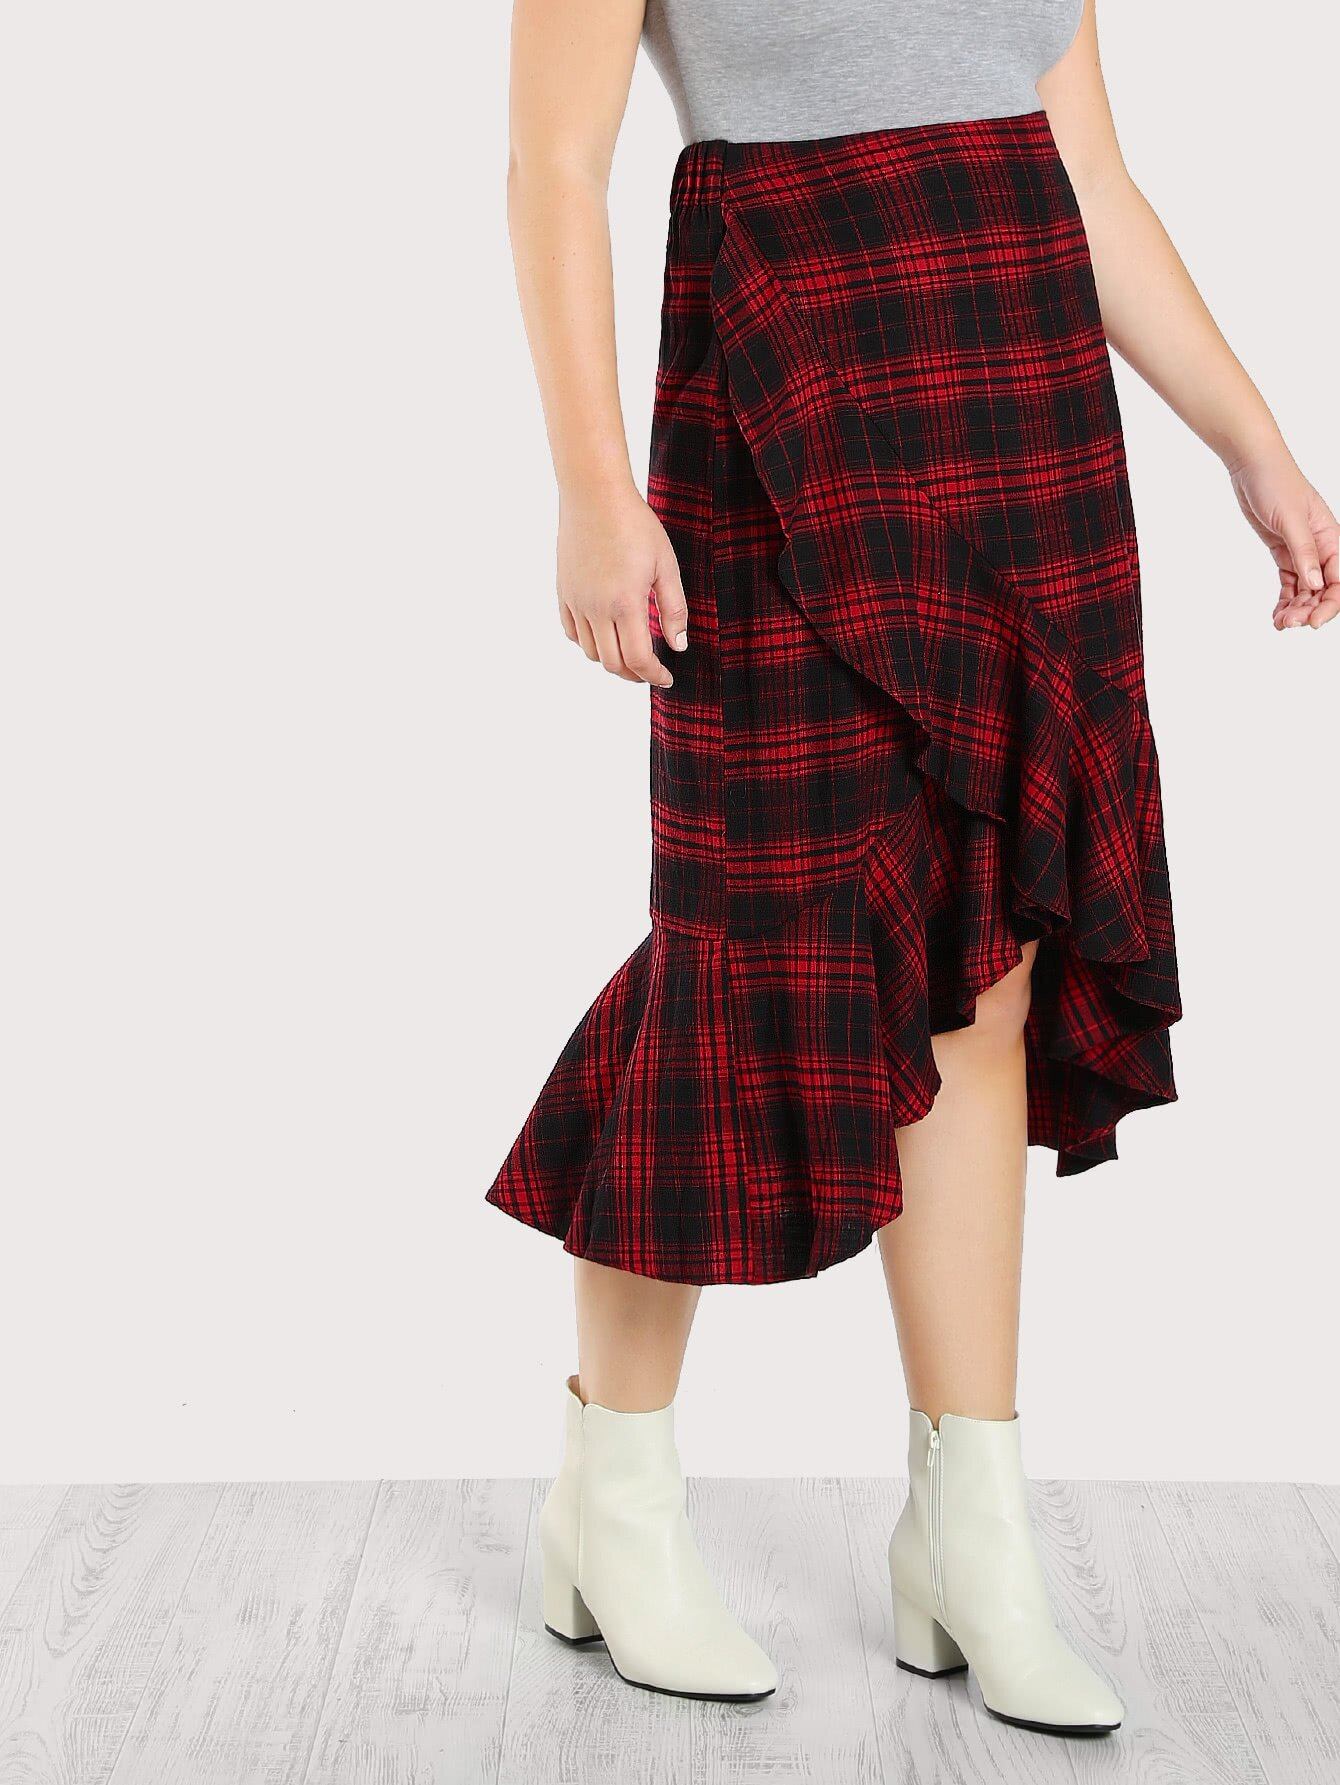 Ruffle Trim Overlap Plaid Skirt kehlani sydney